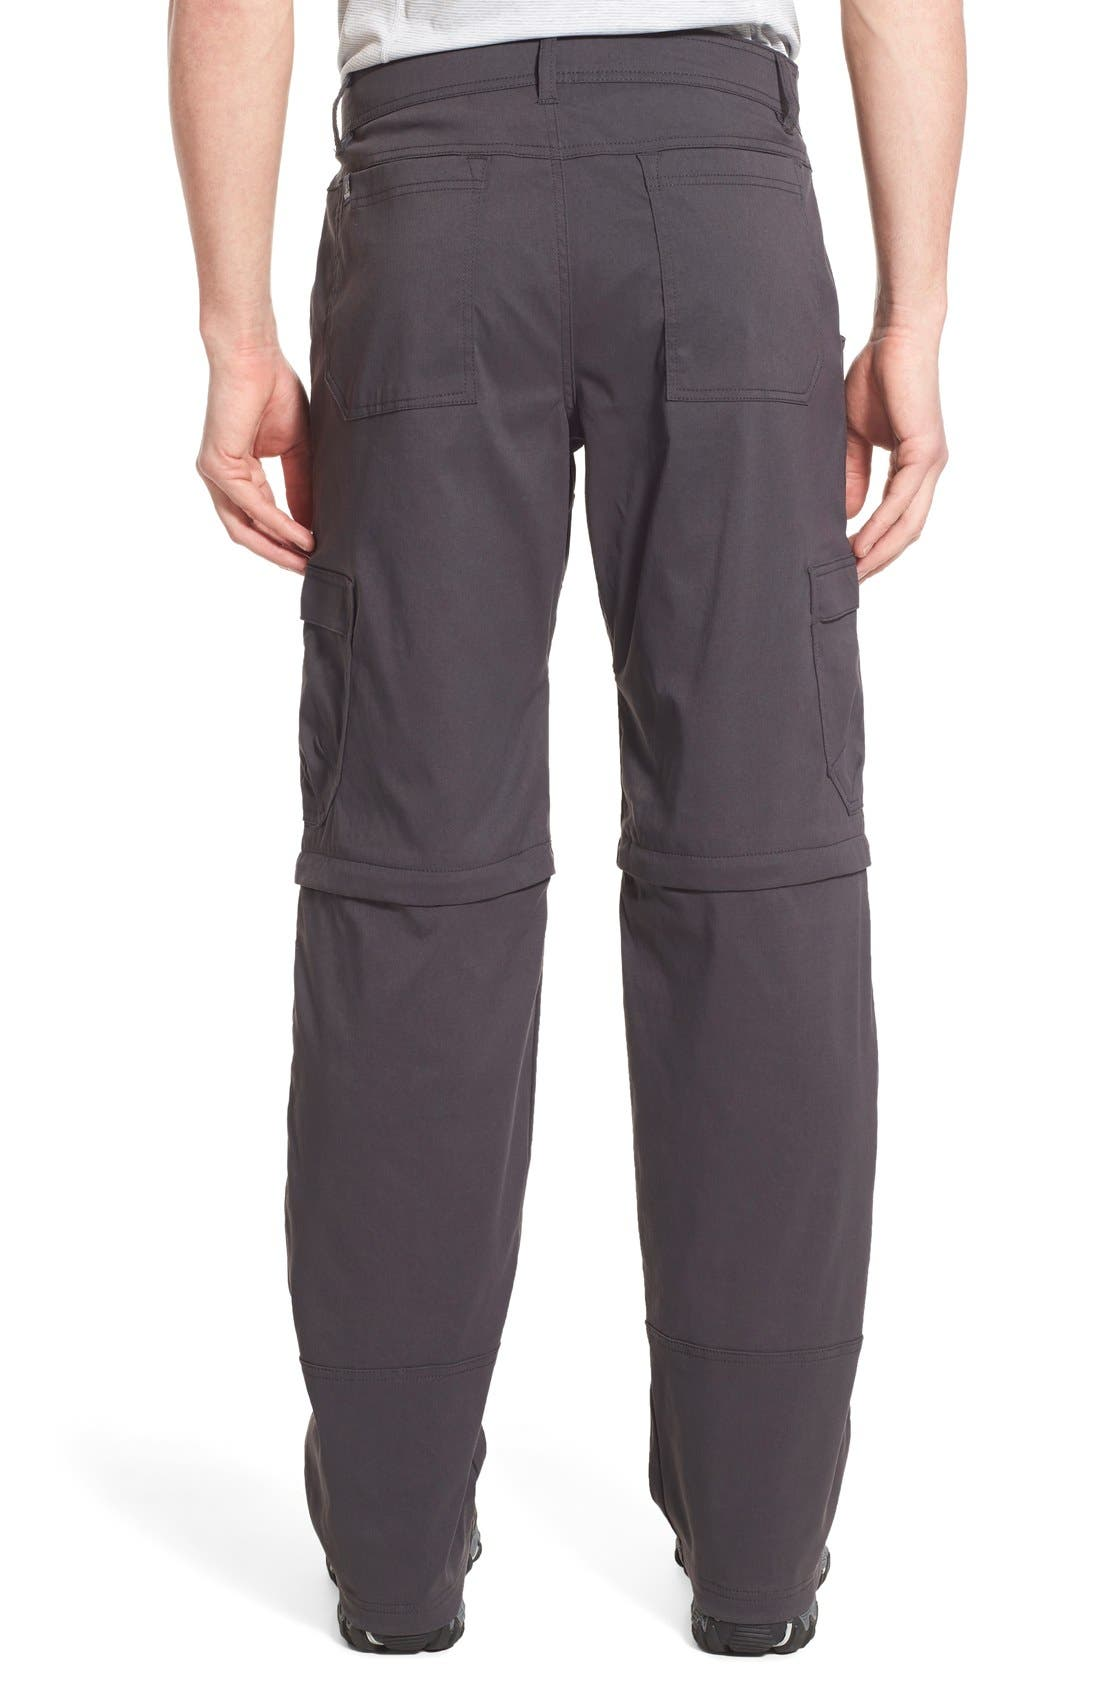 Zion Stretch Convertible Cargo Hiking Pants,                             Alternate thumbnail 8, color,                             010